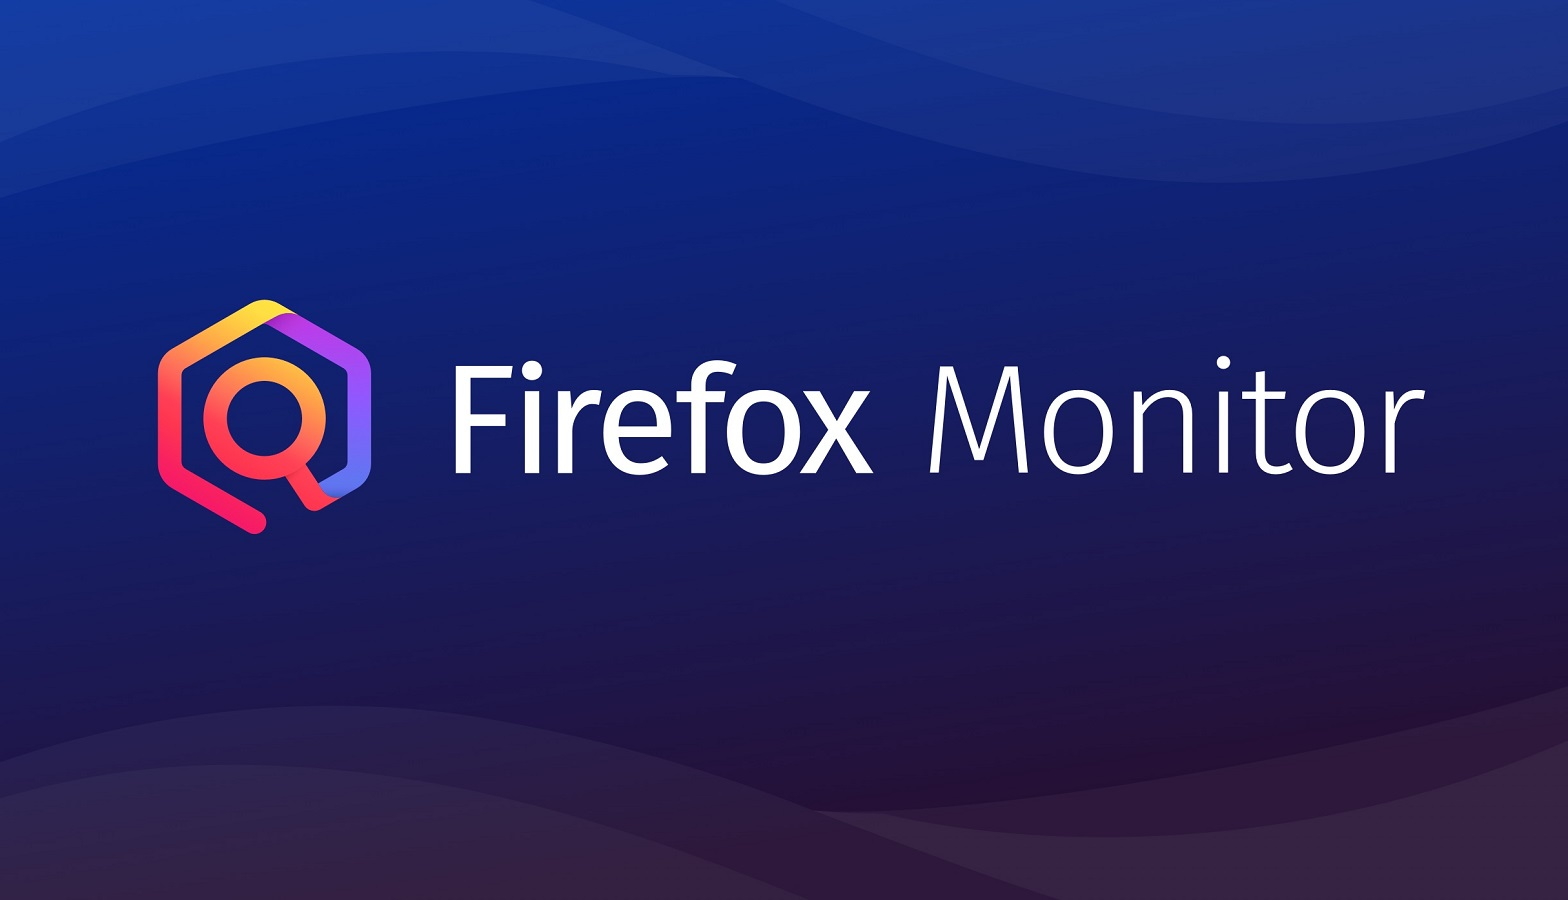 firefox monitor logo data breach